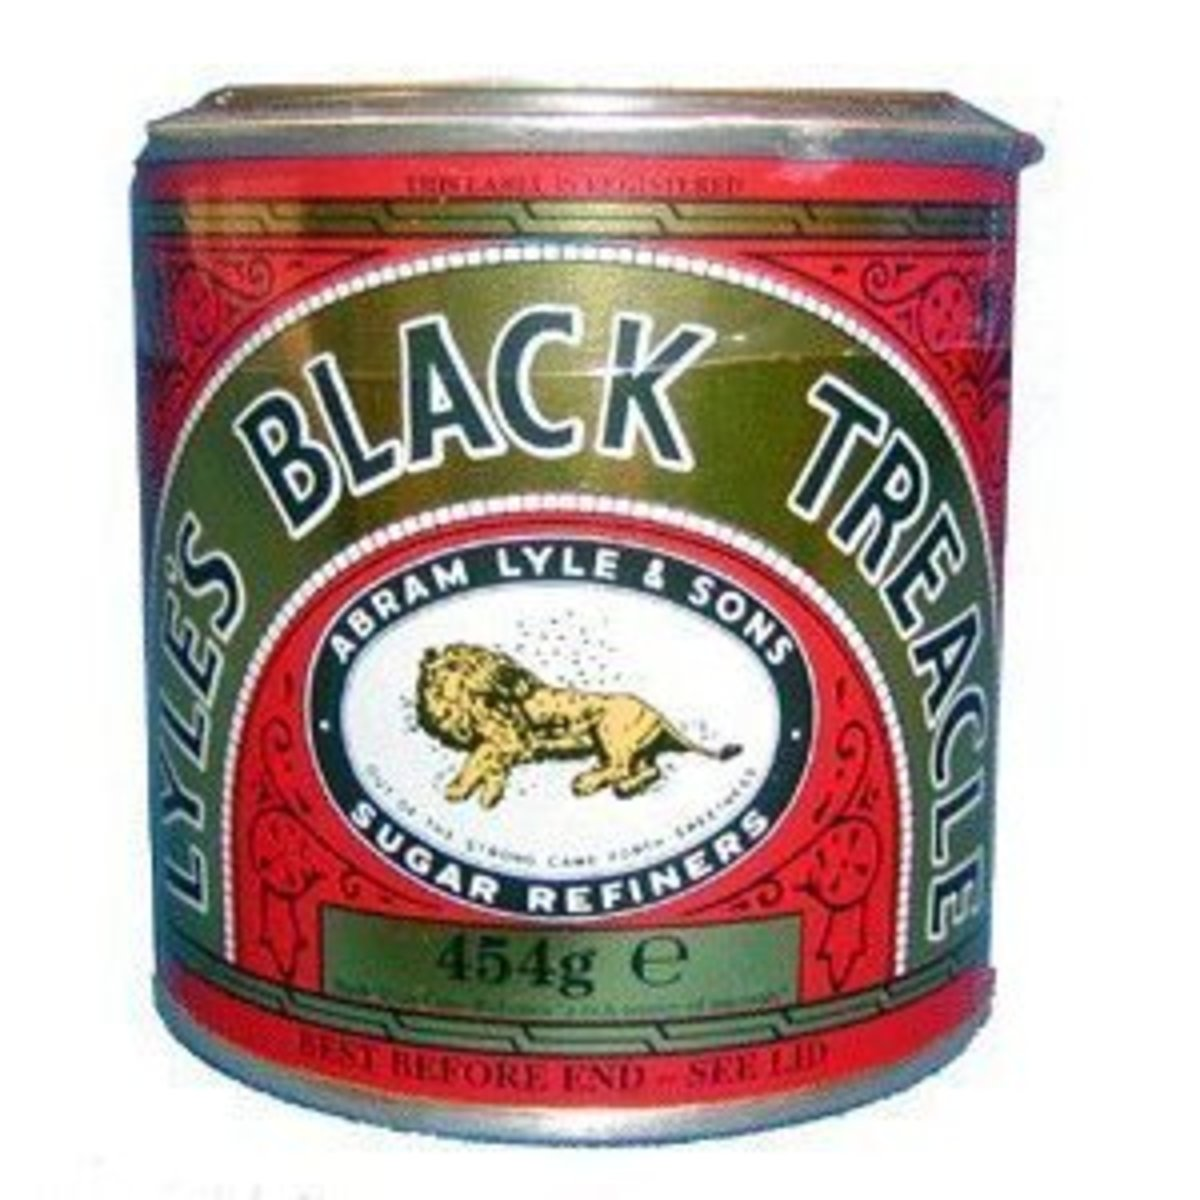 Lyle's Black Treacle is sticky, sweet and useful in the kitchen